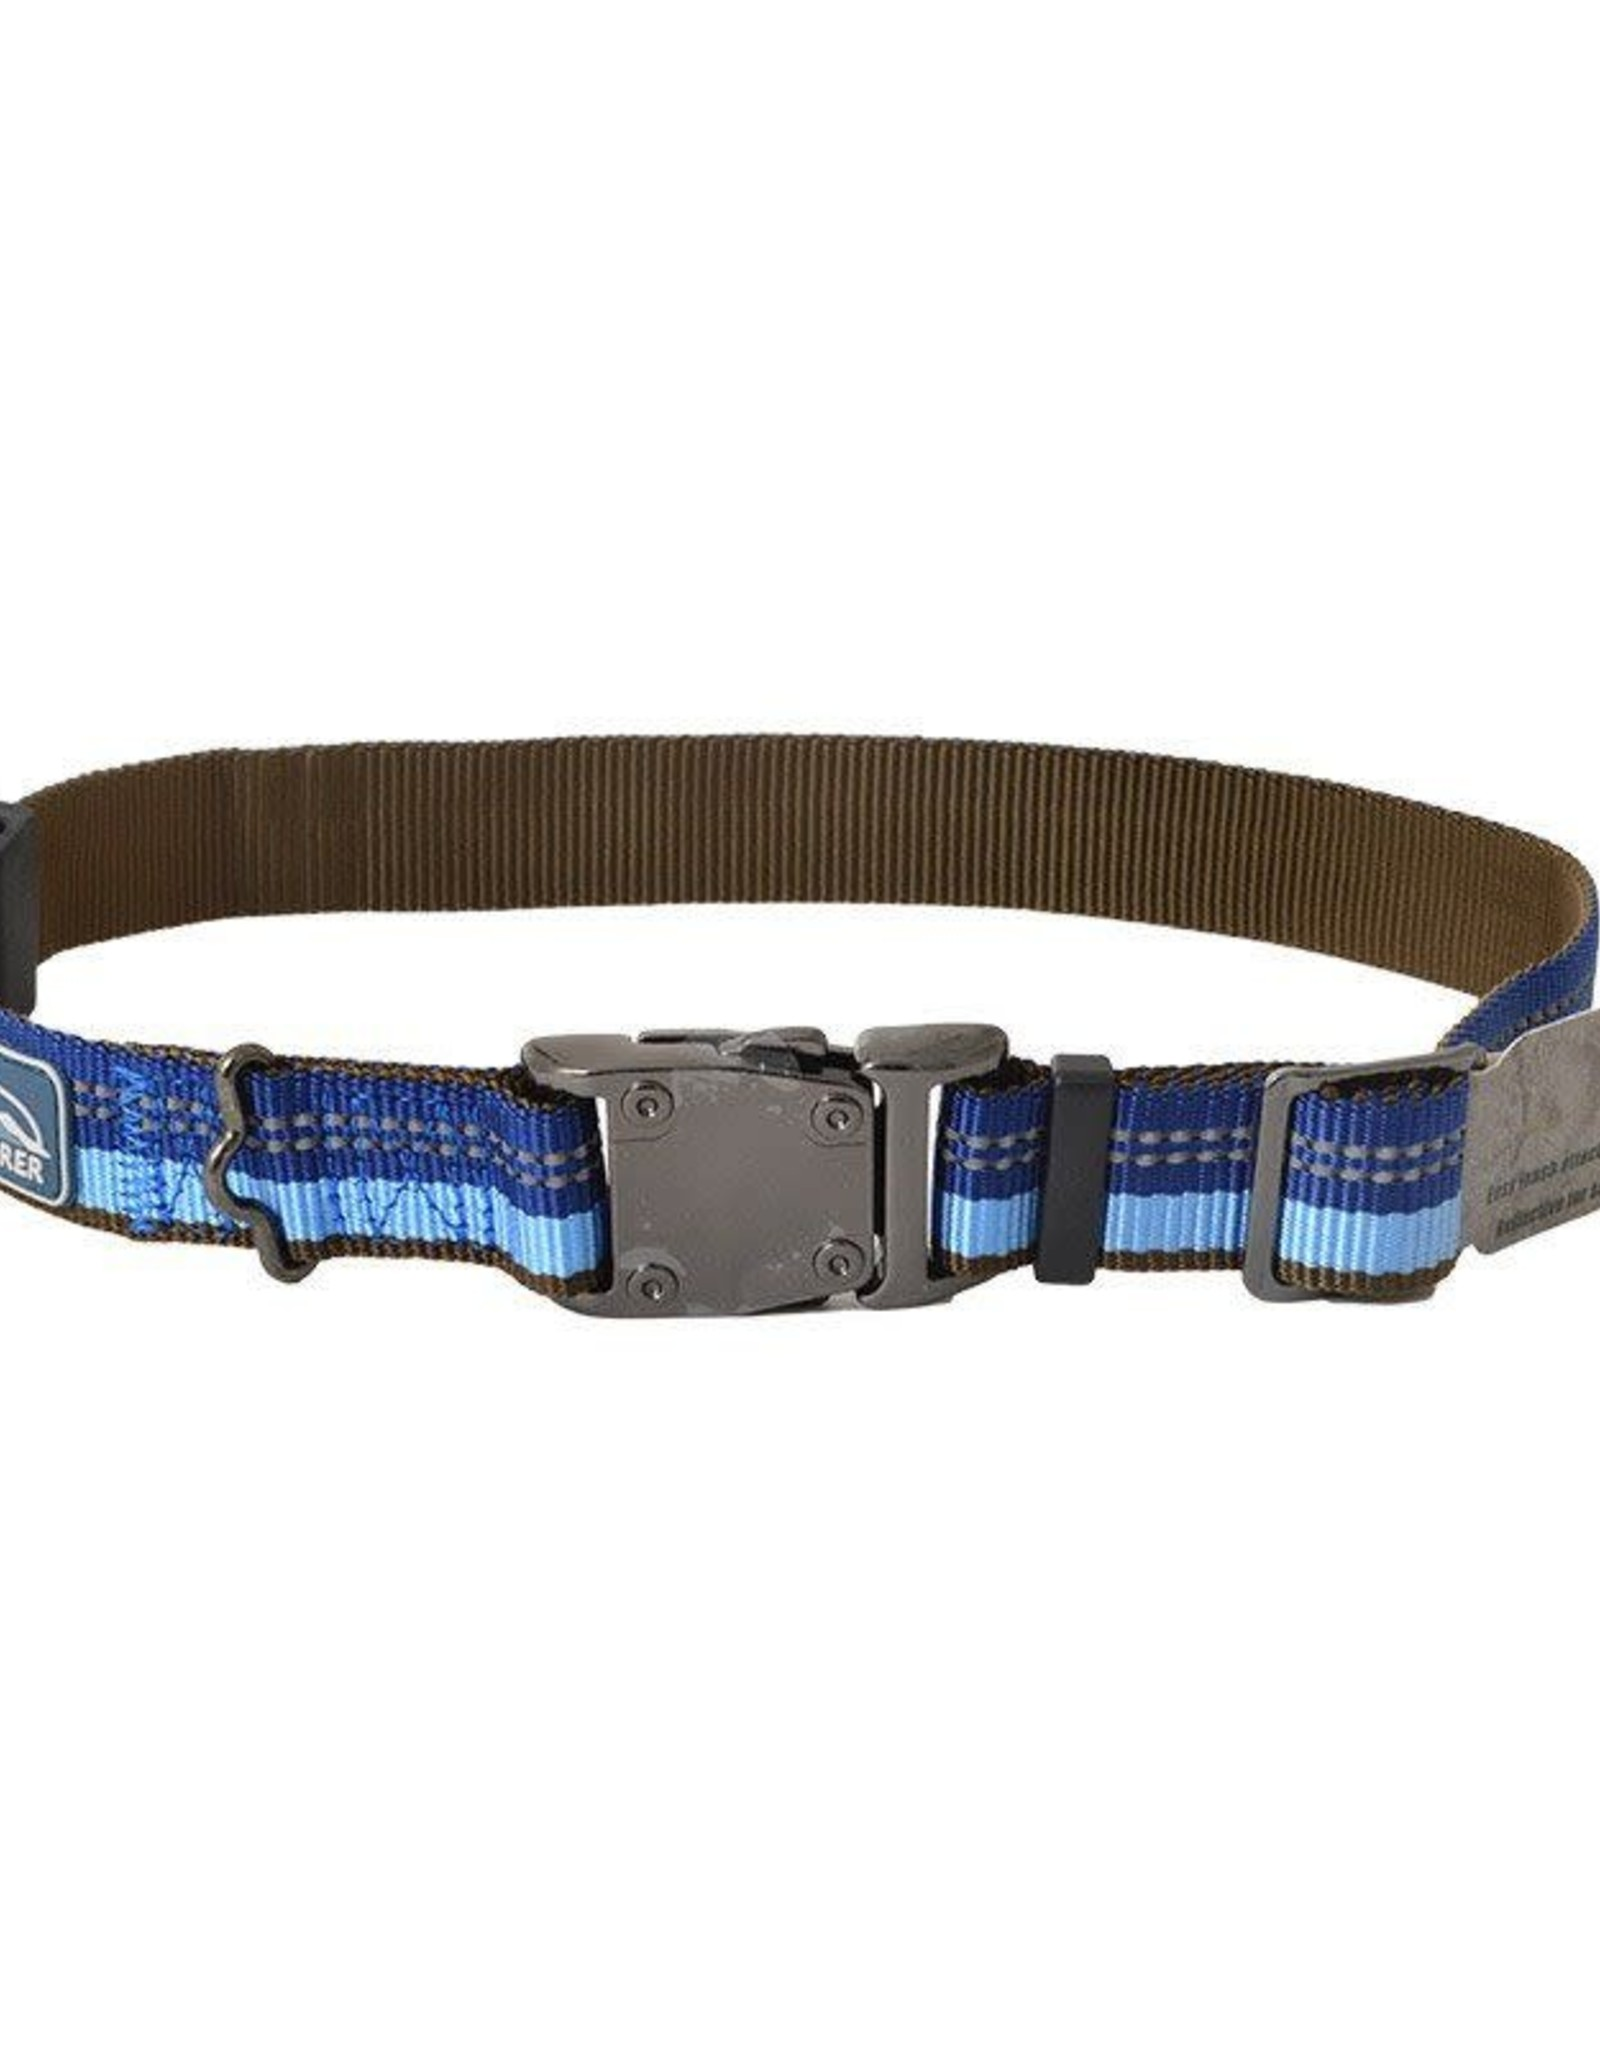 Coastal Explorer Medium Reflective Collar